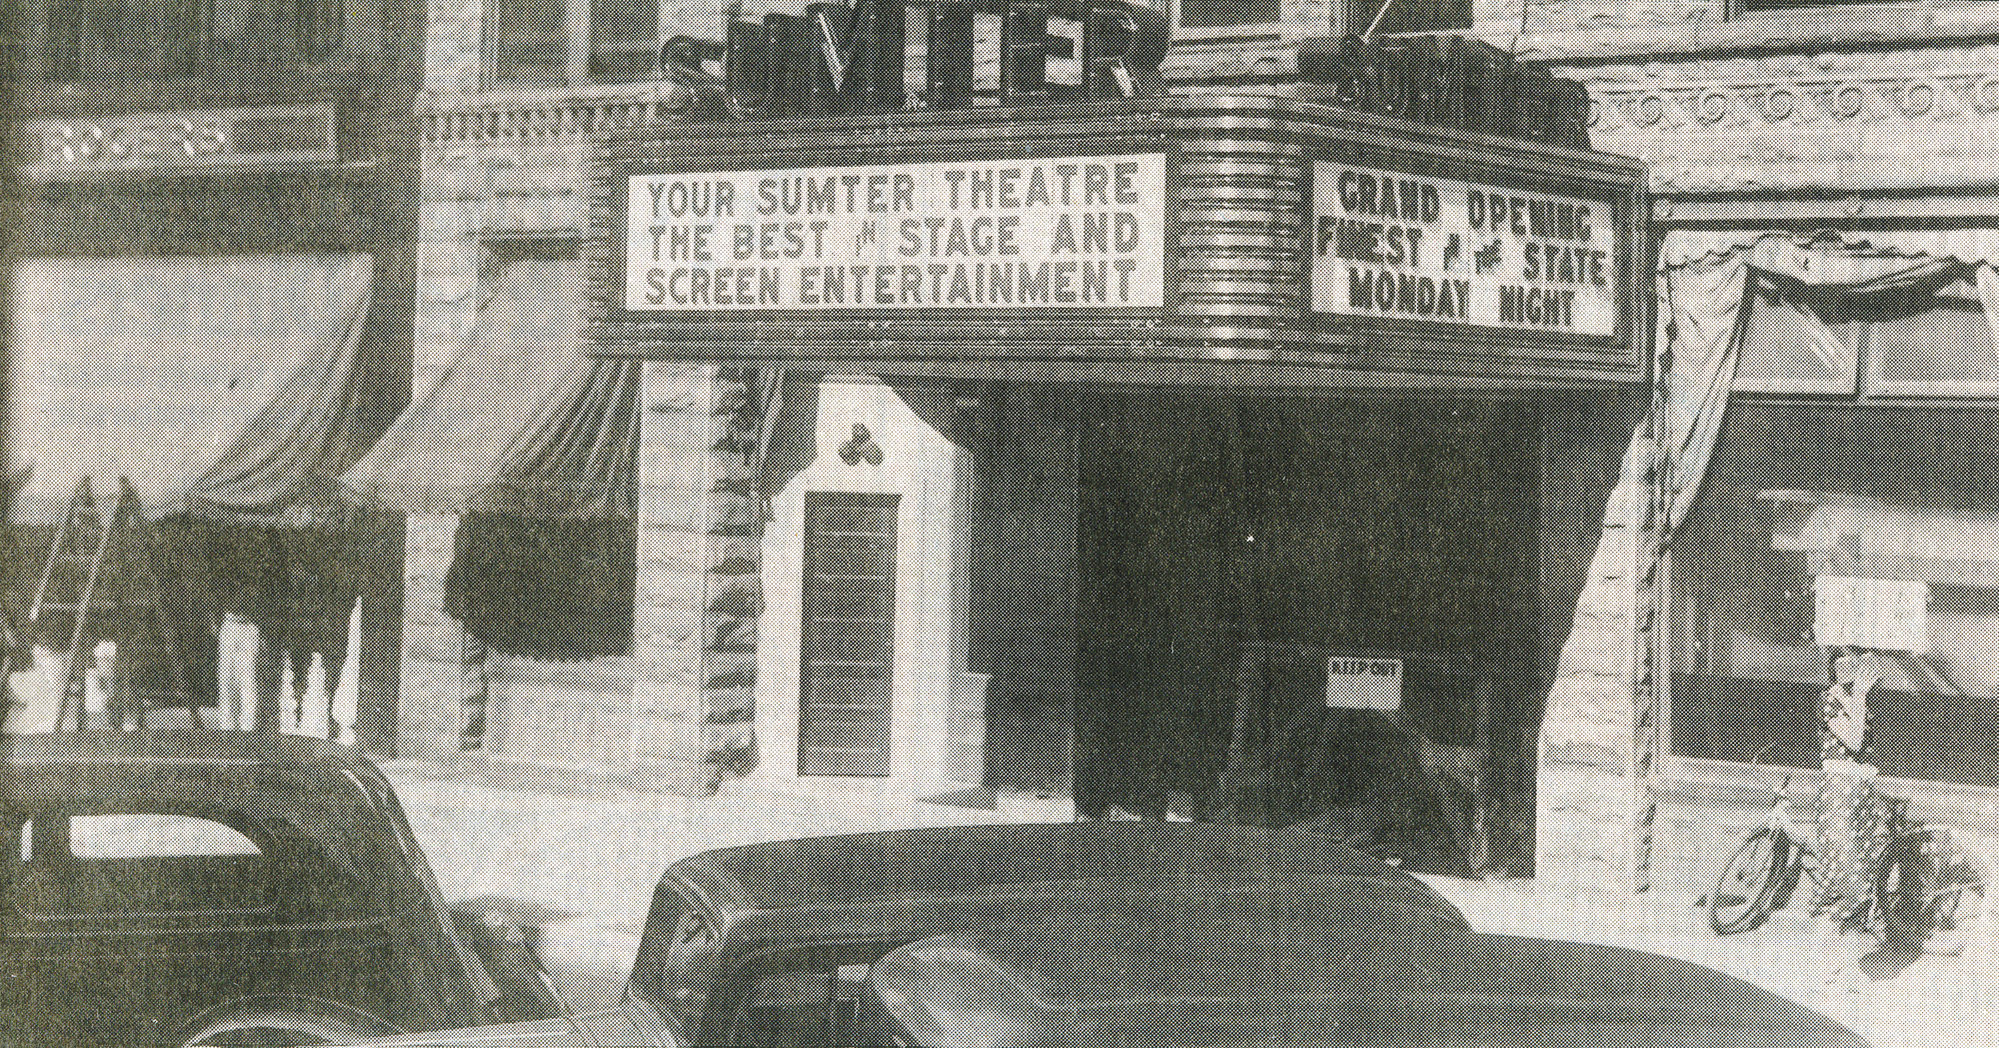 Sumter Opera House opened Aug. 31, 1936, as The Sumter Theatre, one of the finest movie theaters in the South. The Sumter Opera House is celebrating its 125th year this year.